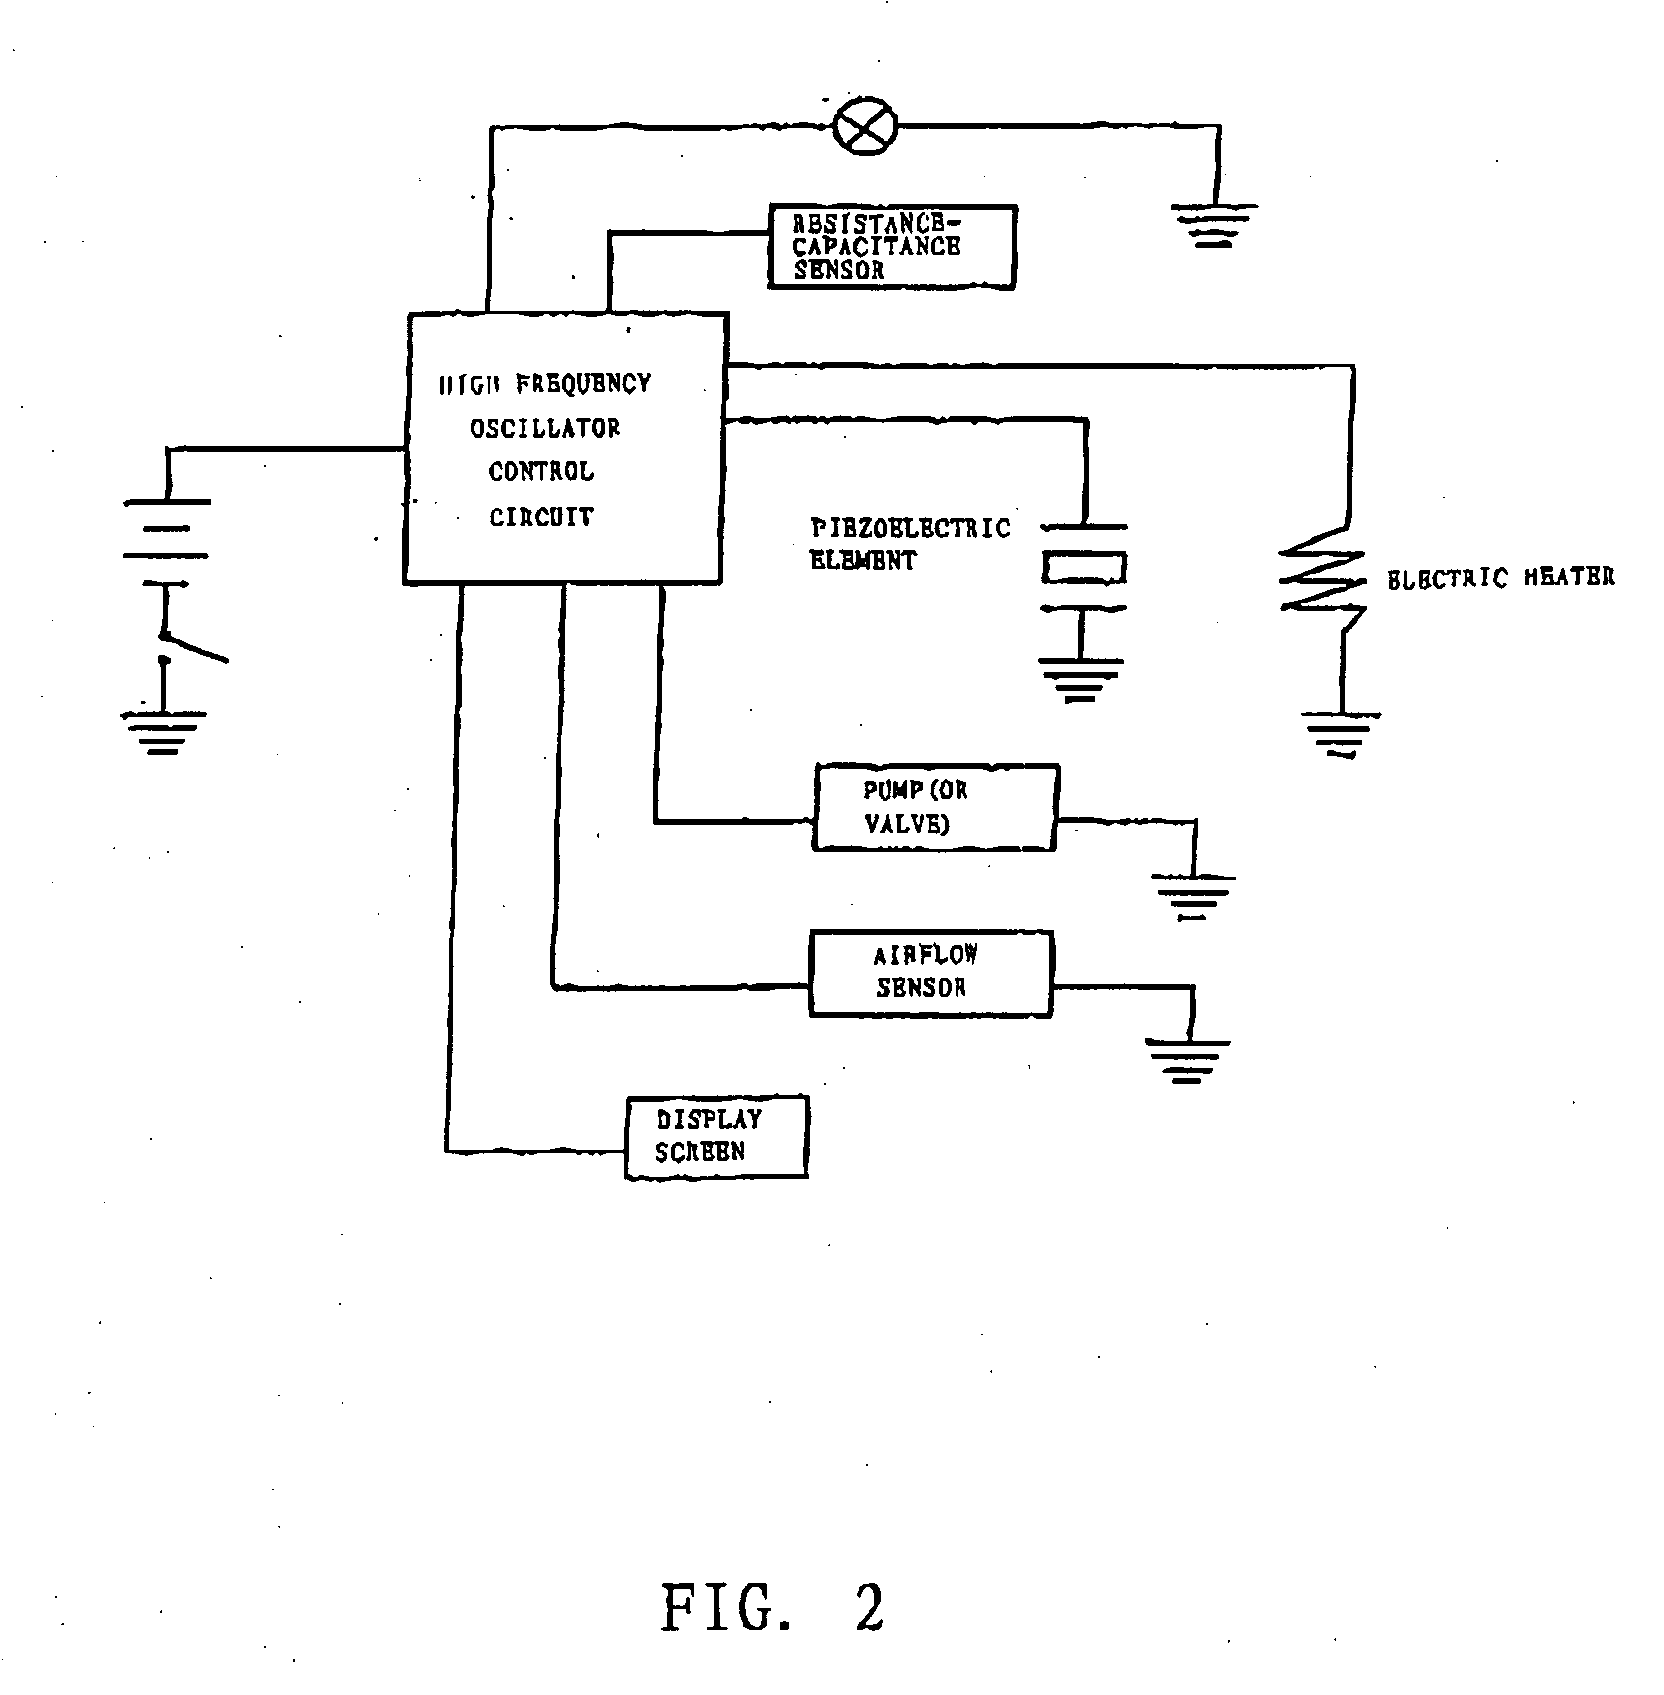 US20060196518A1 20060907 D00002 patent us20060196518 flameless electronic atomizing cigarette vaporizer wiring diagram at soozxer.org